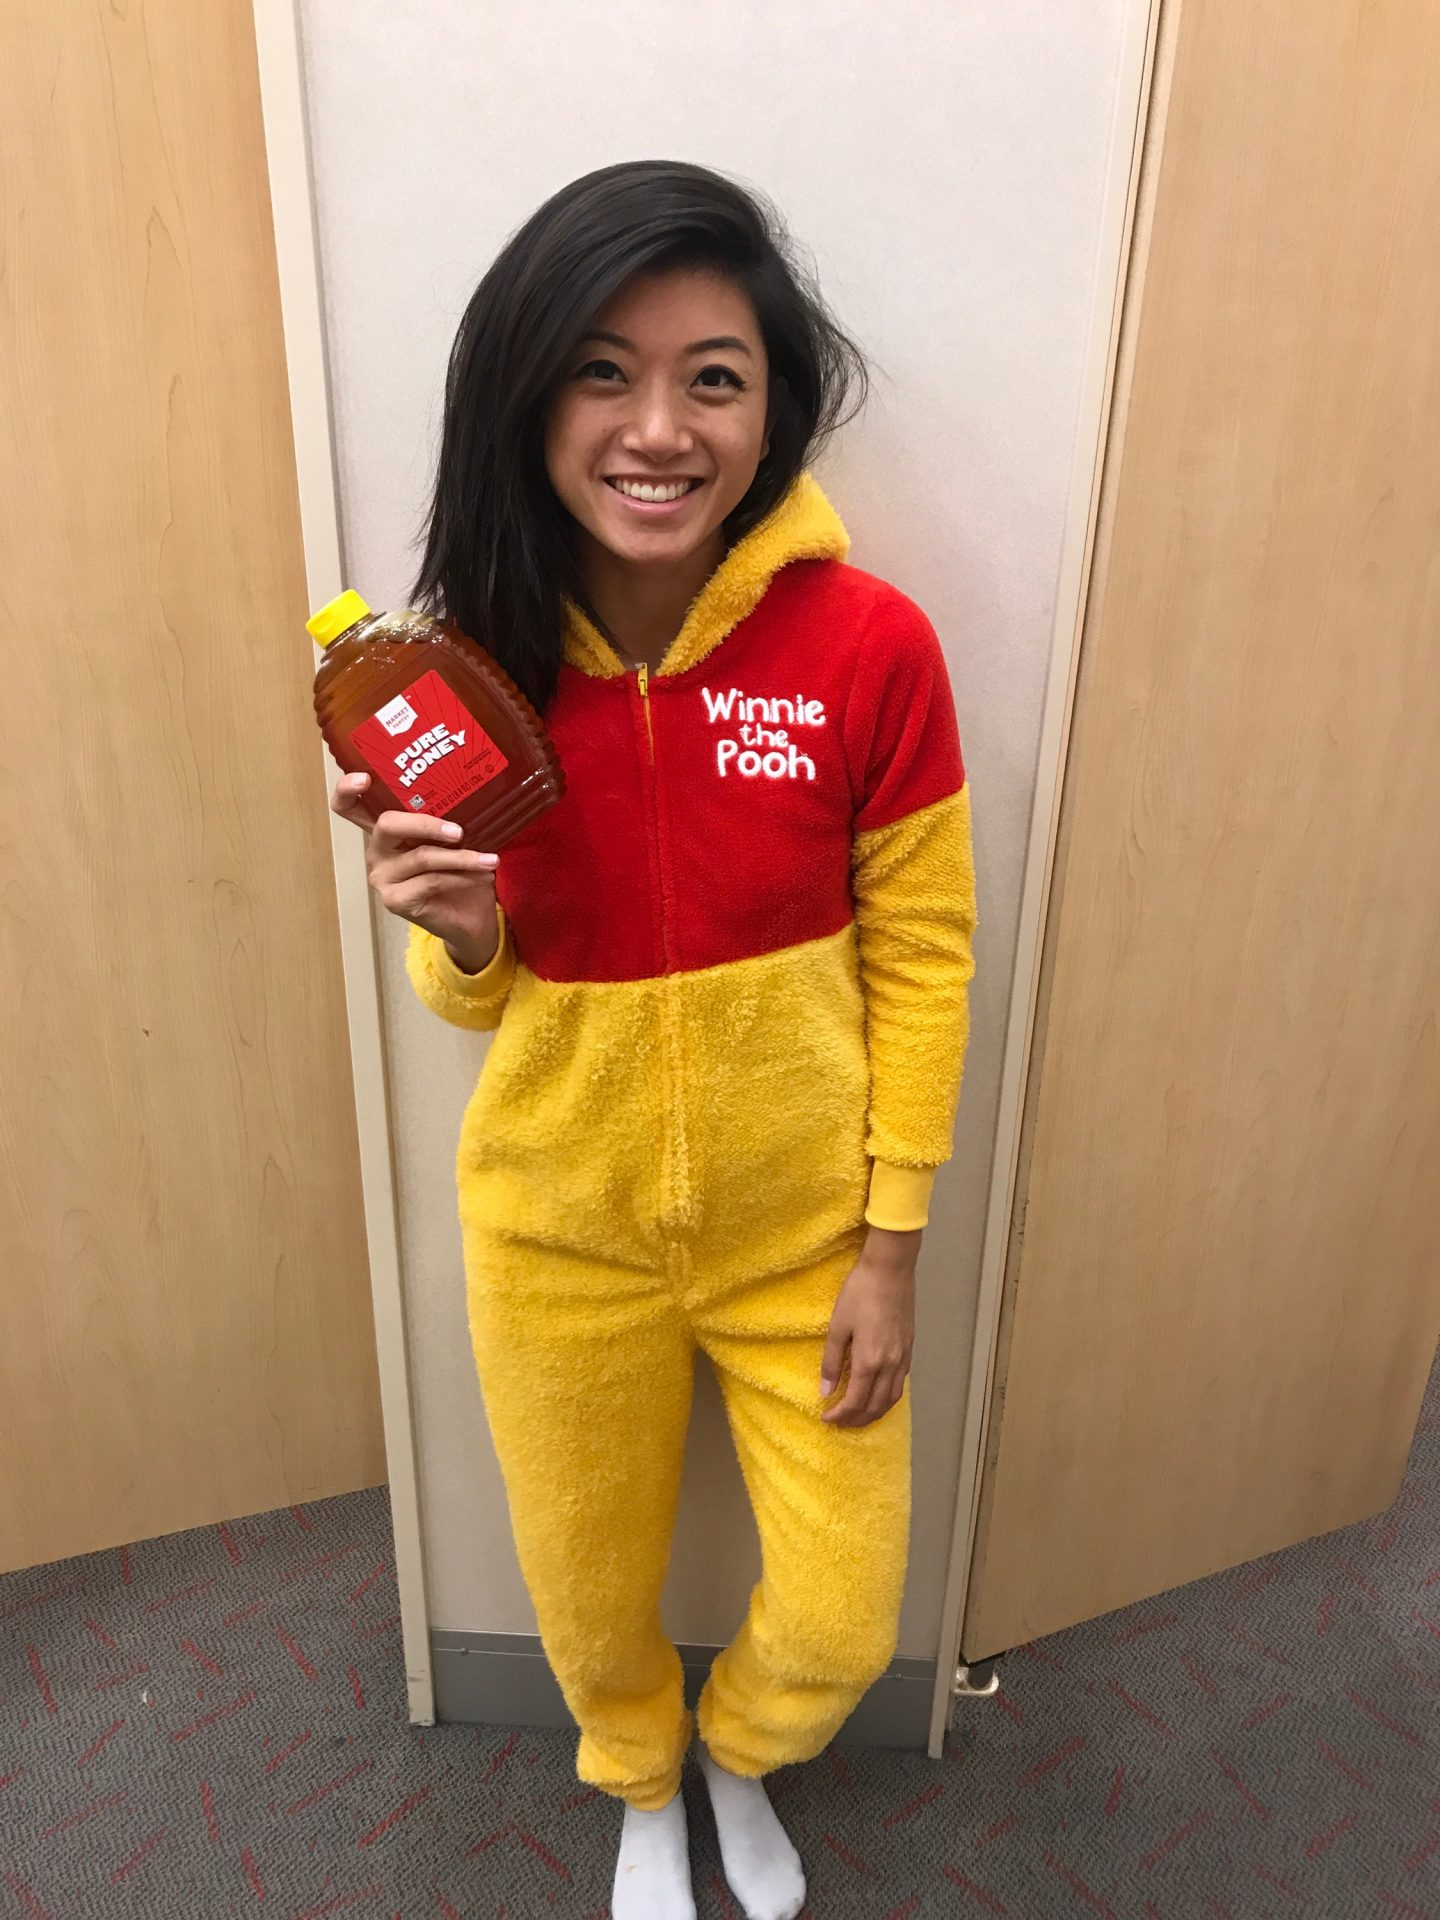 Looking for the perfect flash back costume idea? Los Angeles Lifestyle Blogger My Teacher Got Style is sharing the best flash back costume ideas HERE!